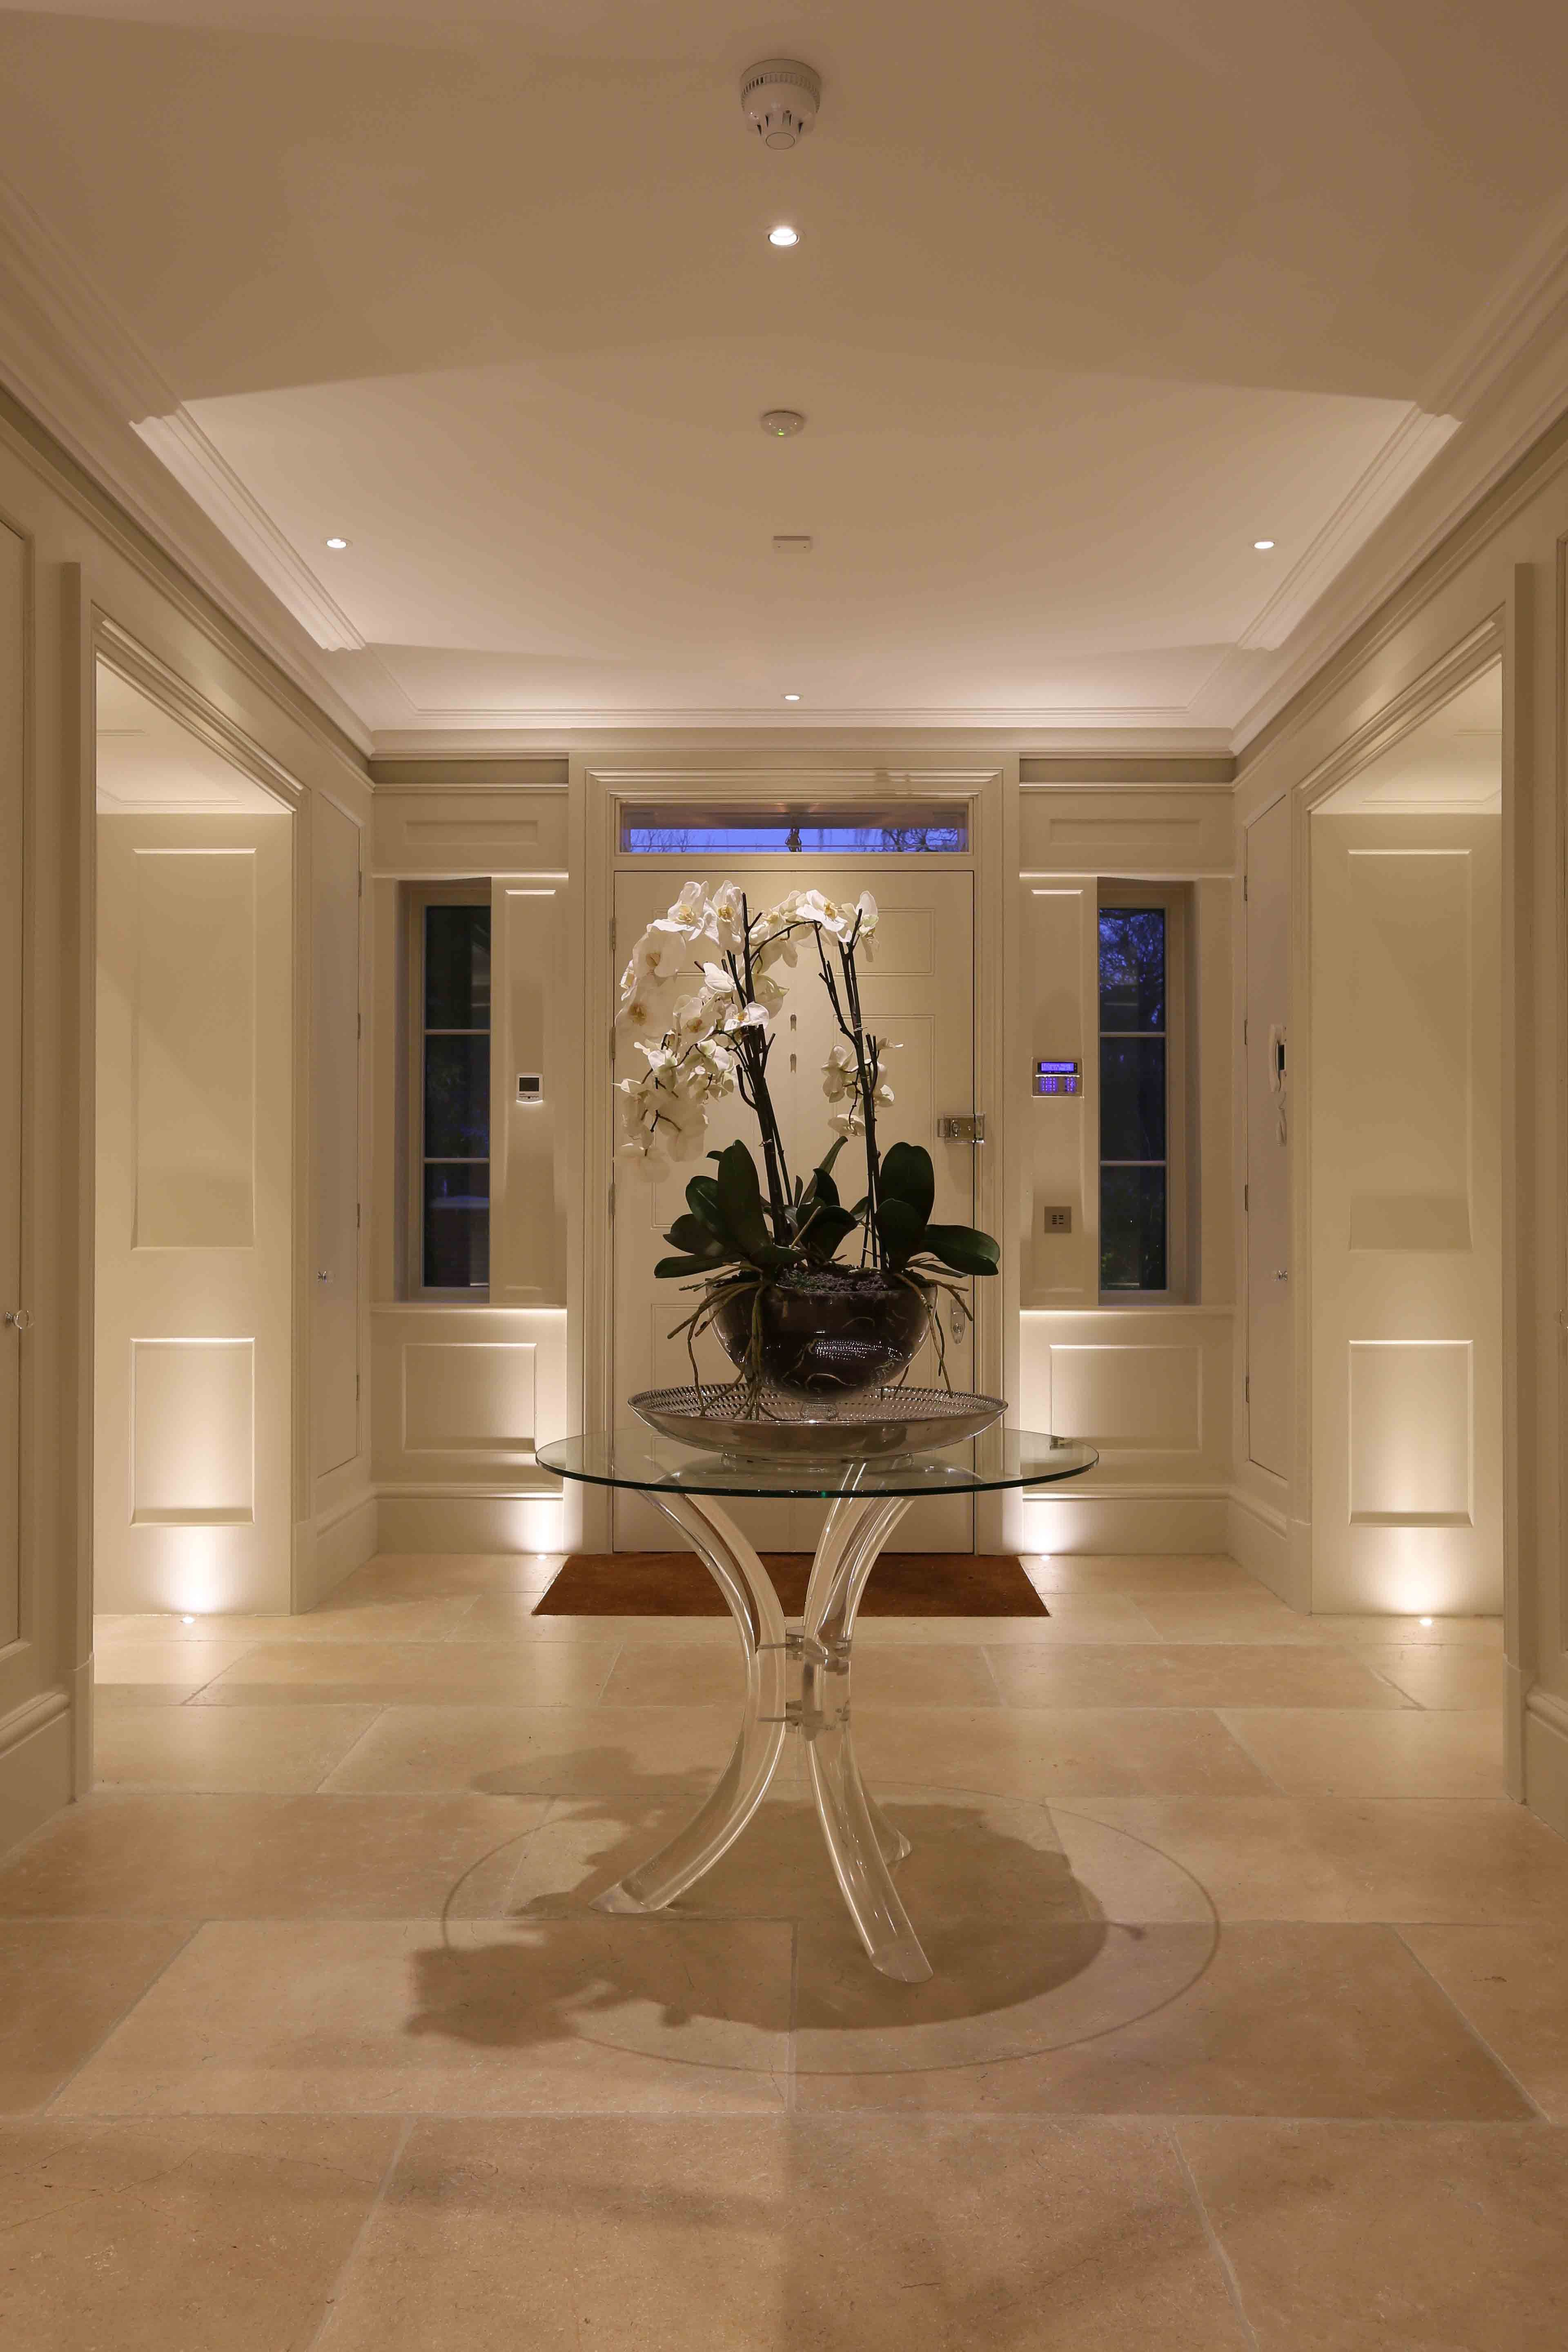 100 Best Corridors Stairs Lighting Images By John: Hallway Lighting Design By John Cullen Lighting